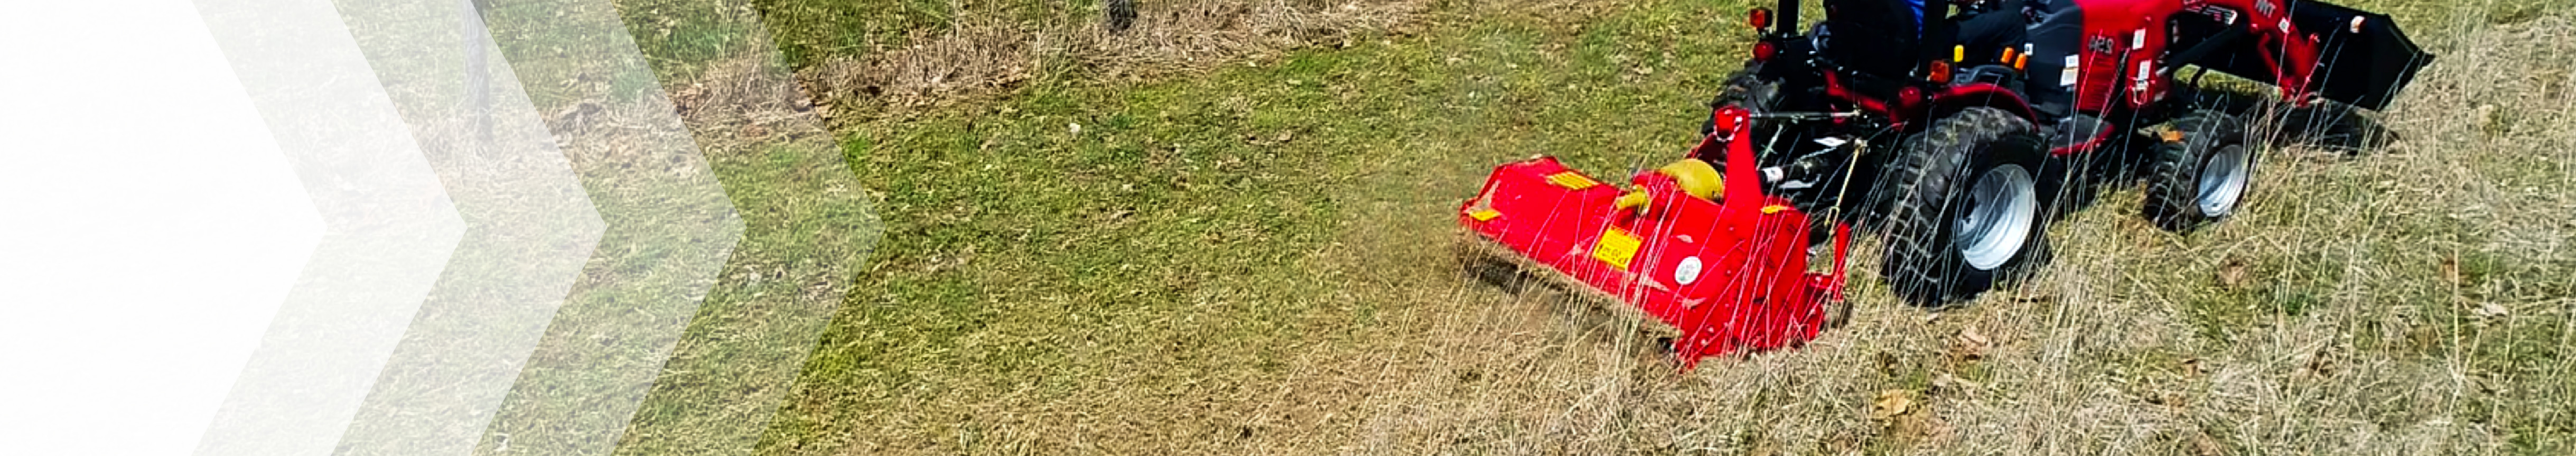 catagory-page-header-flail-mowers.jpg